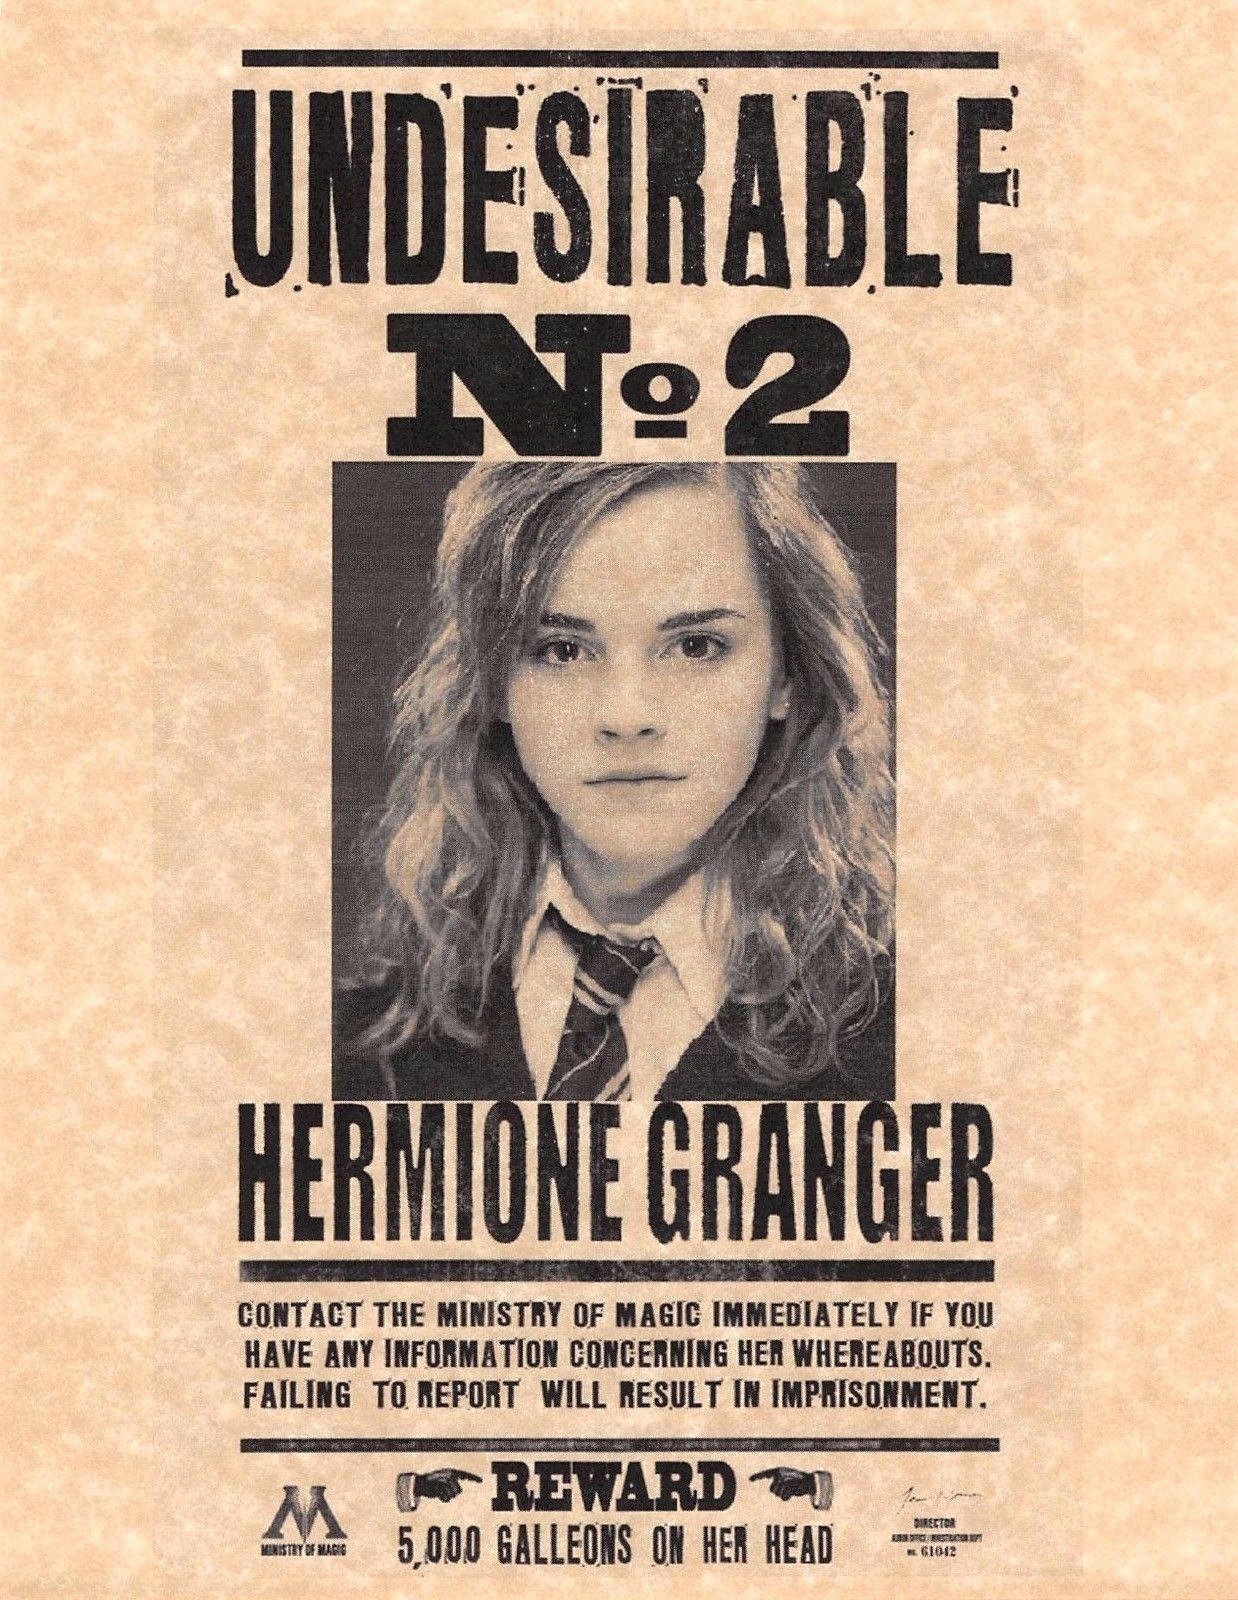 Harry Potter Wanted Poster Elegant Harry Potter Undesirable Number 2 Hermione Granger Flyer